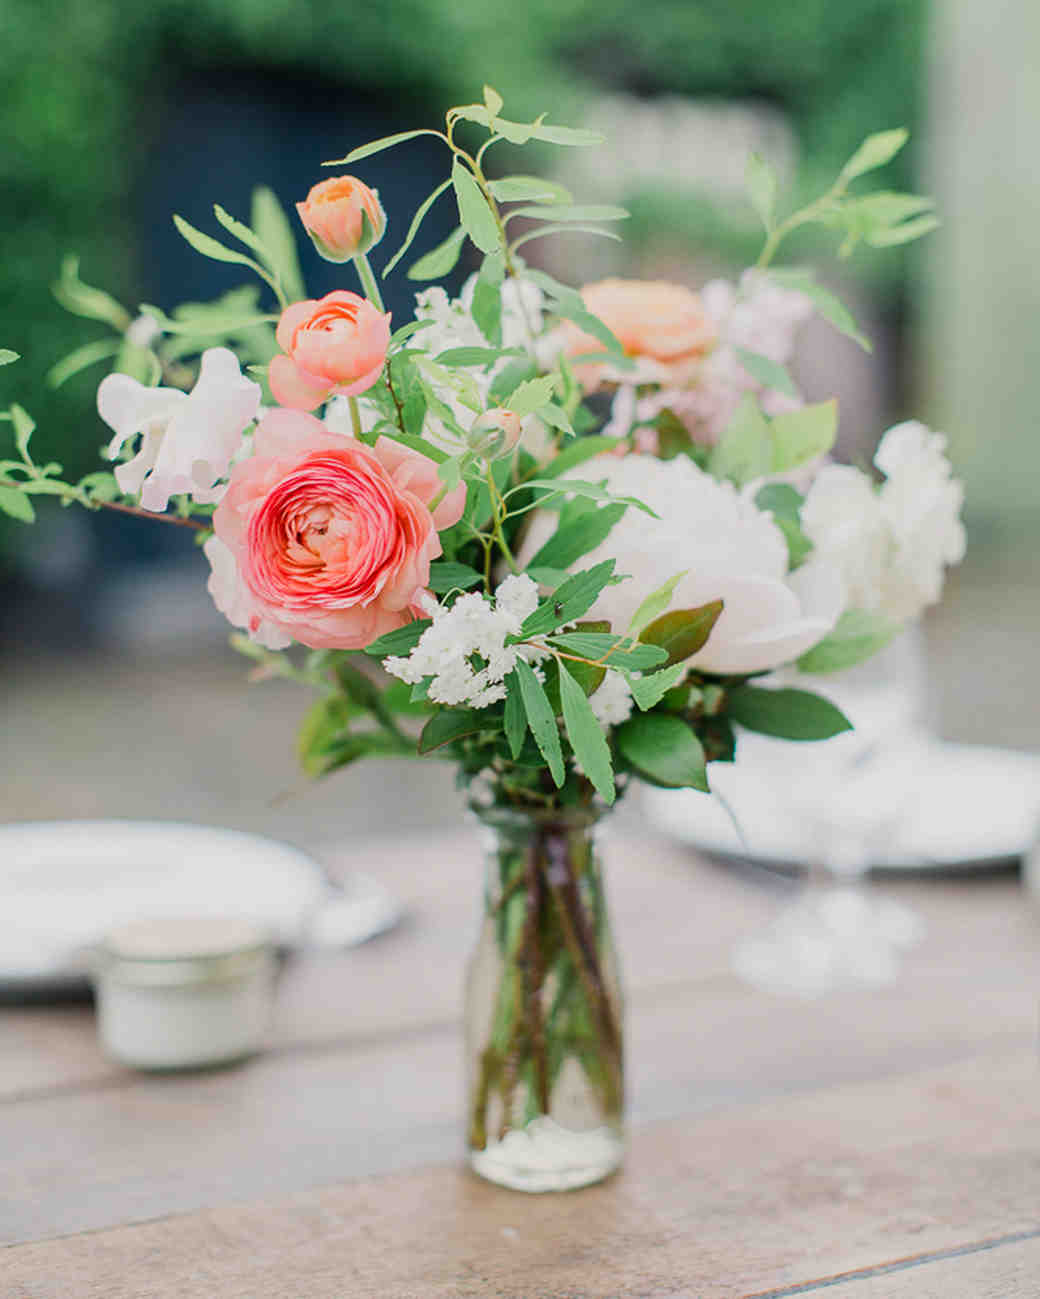 Flower Vases For Weddings: 50 Wedding Centerpiece Ideas We Love